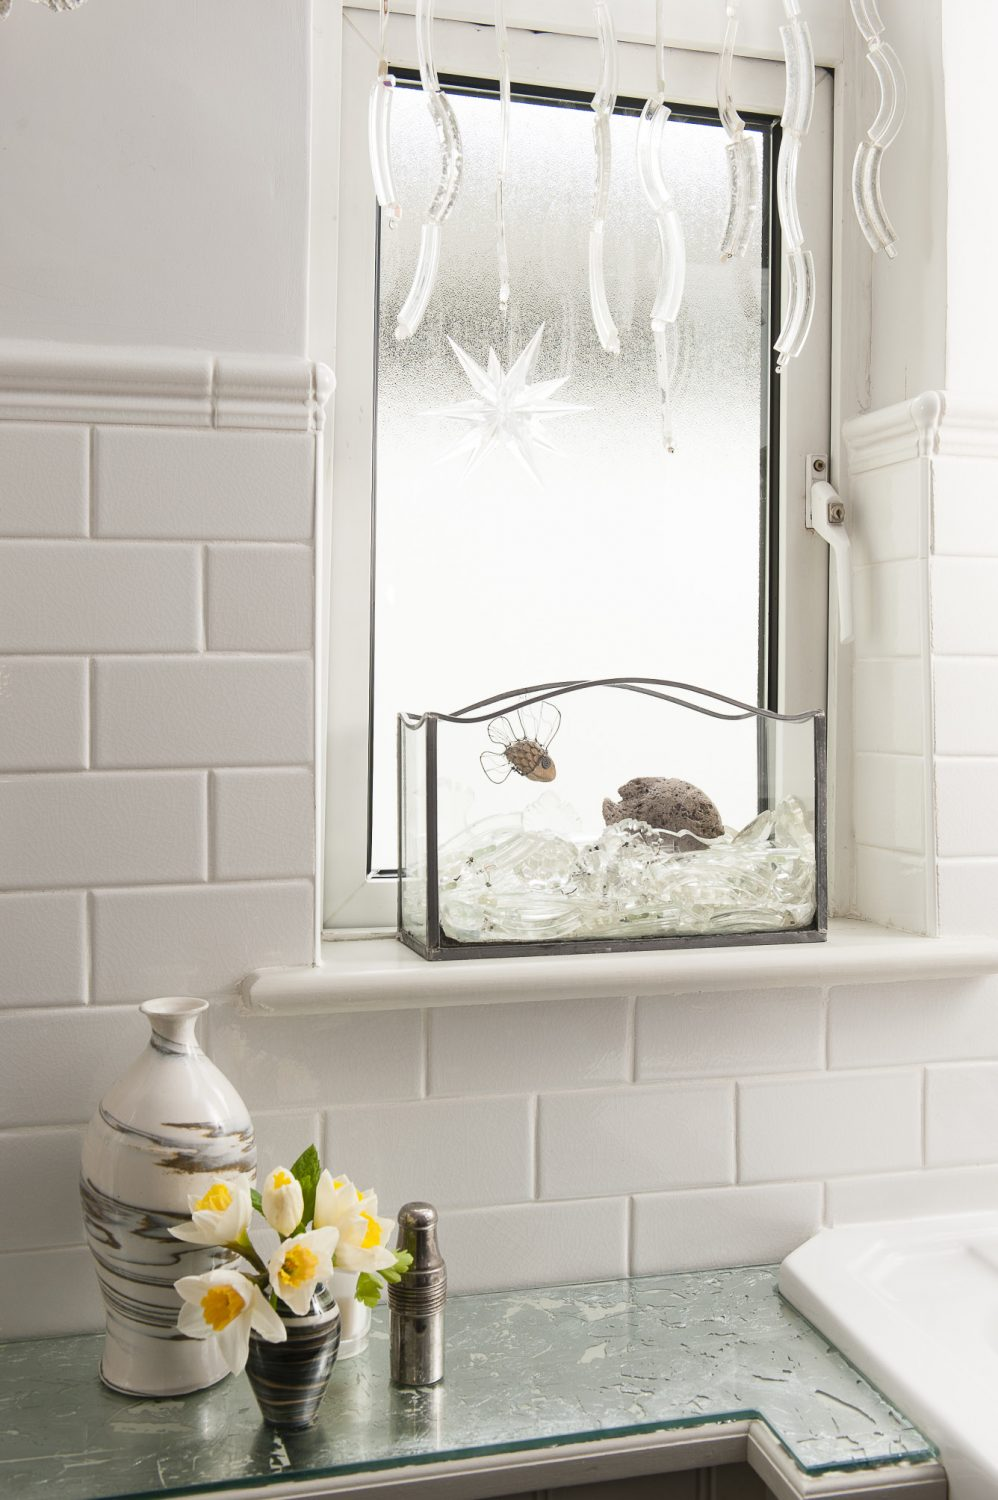 In the bathroom, Trudi has hung glass fragments in the window and created a mock aquarium using salvaged glass, crystal and a little hand-made wire and pebble fish. The off-white tiles are from Fired Earth – a more classic version of Metro tiles, but crackle glazed